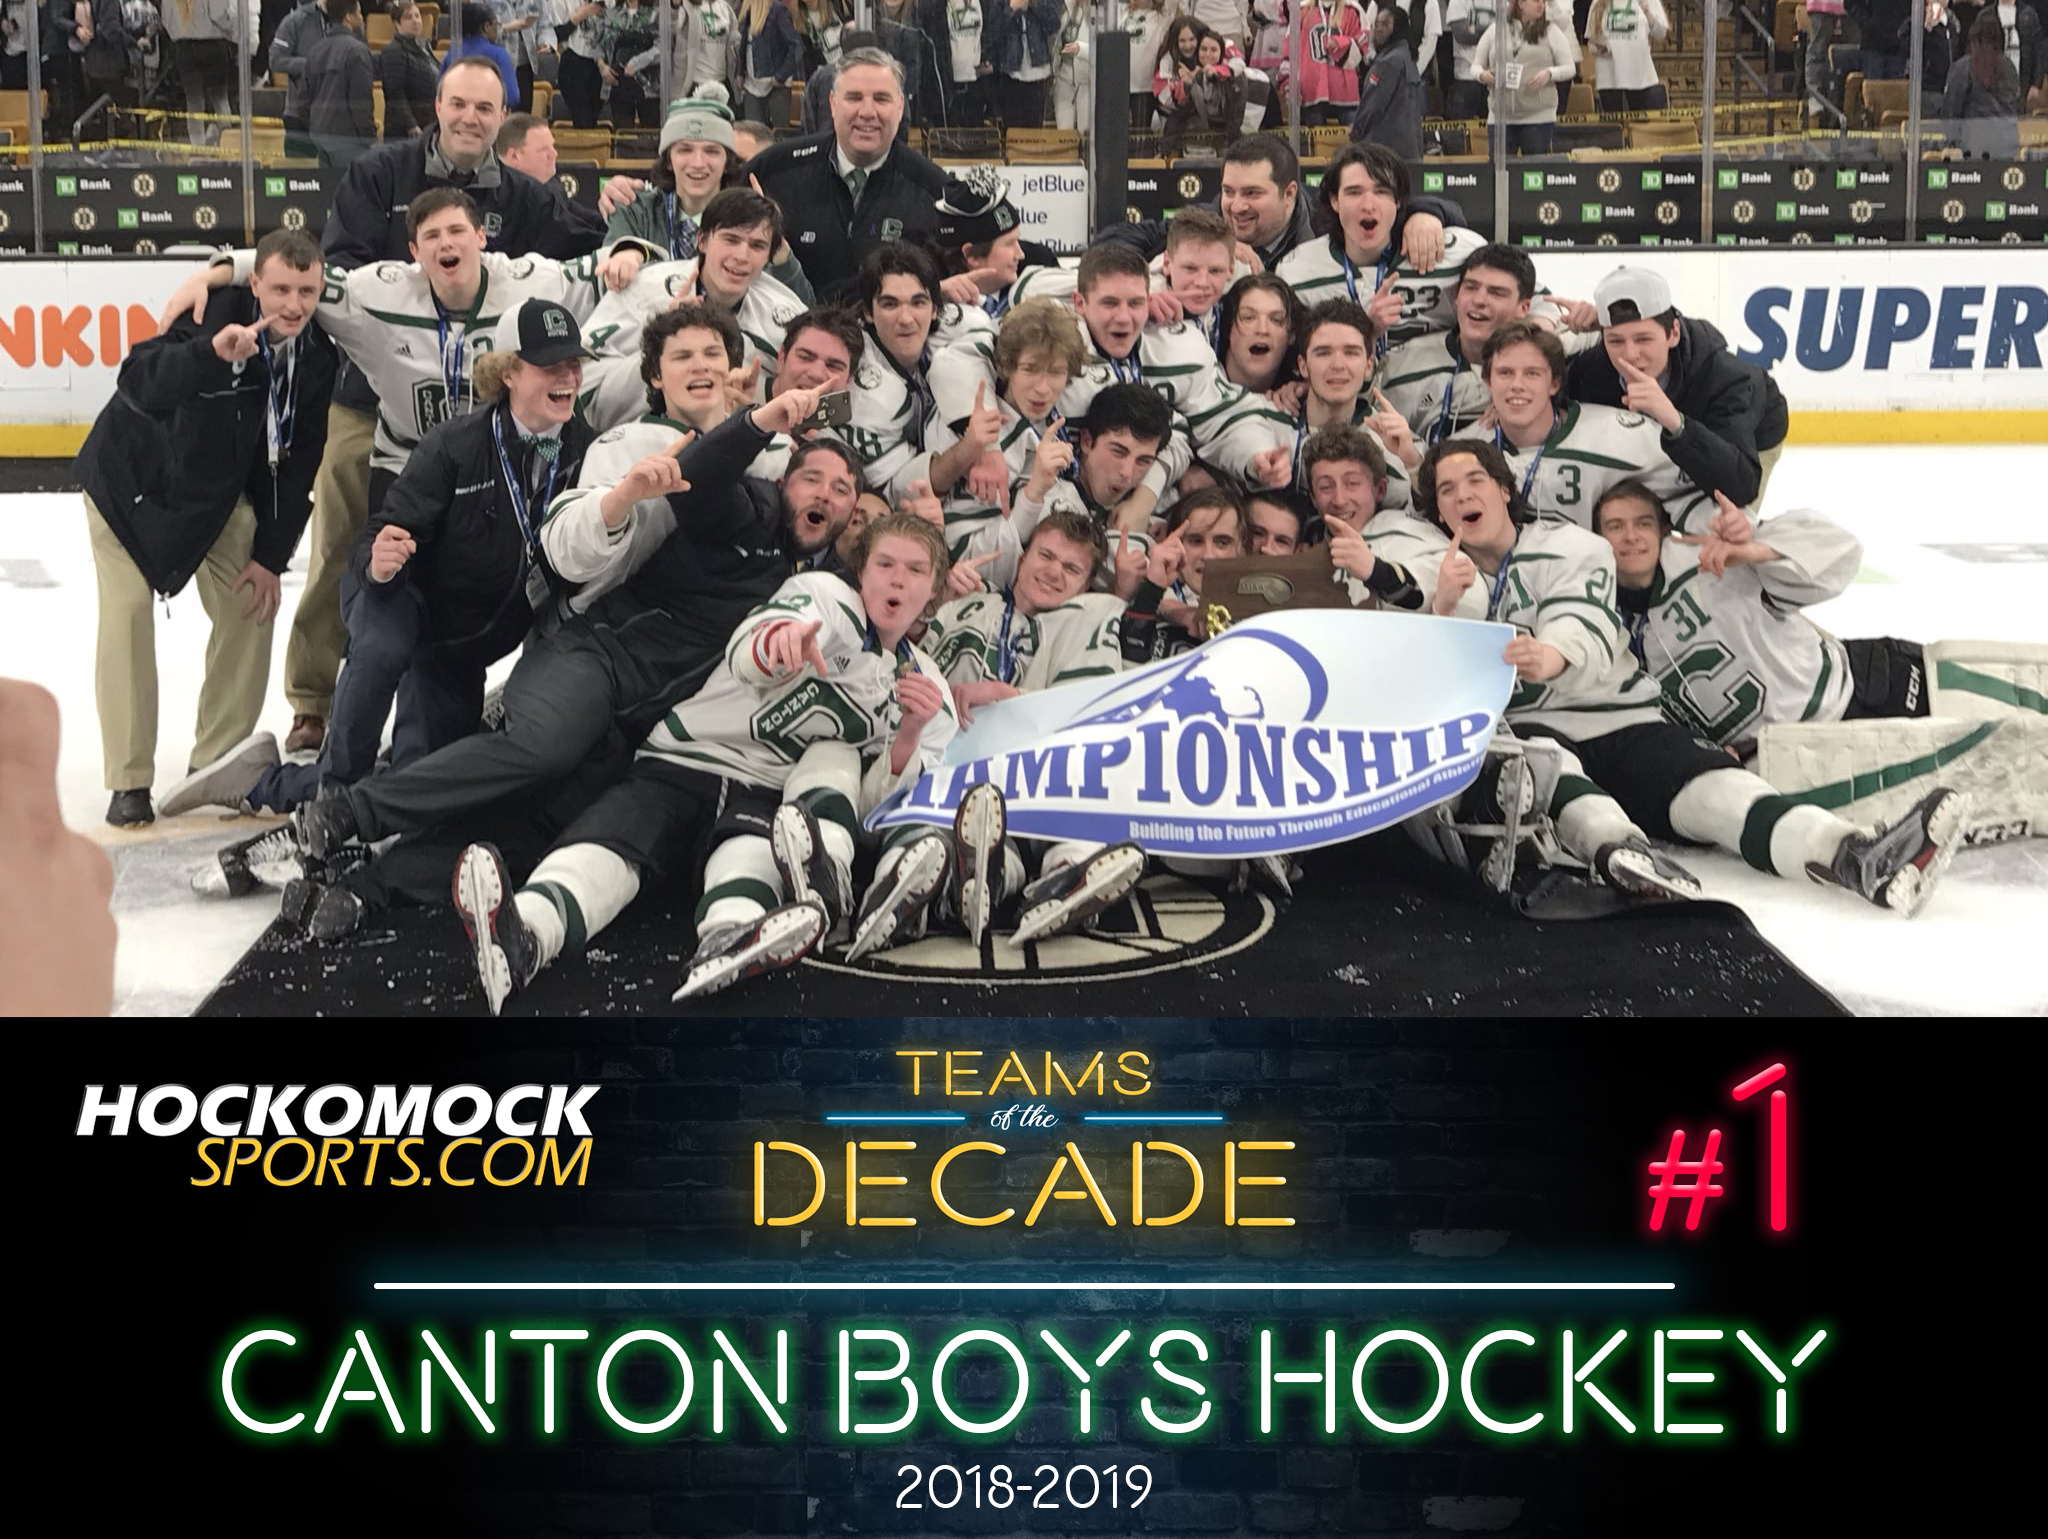 Canton boys hockey